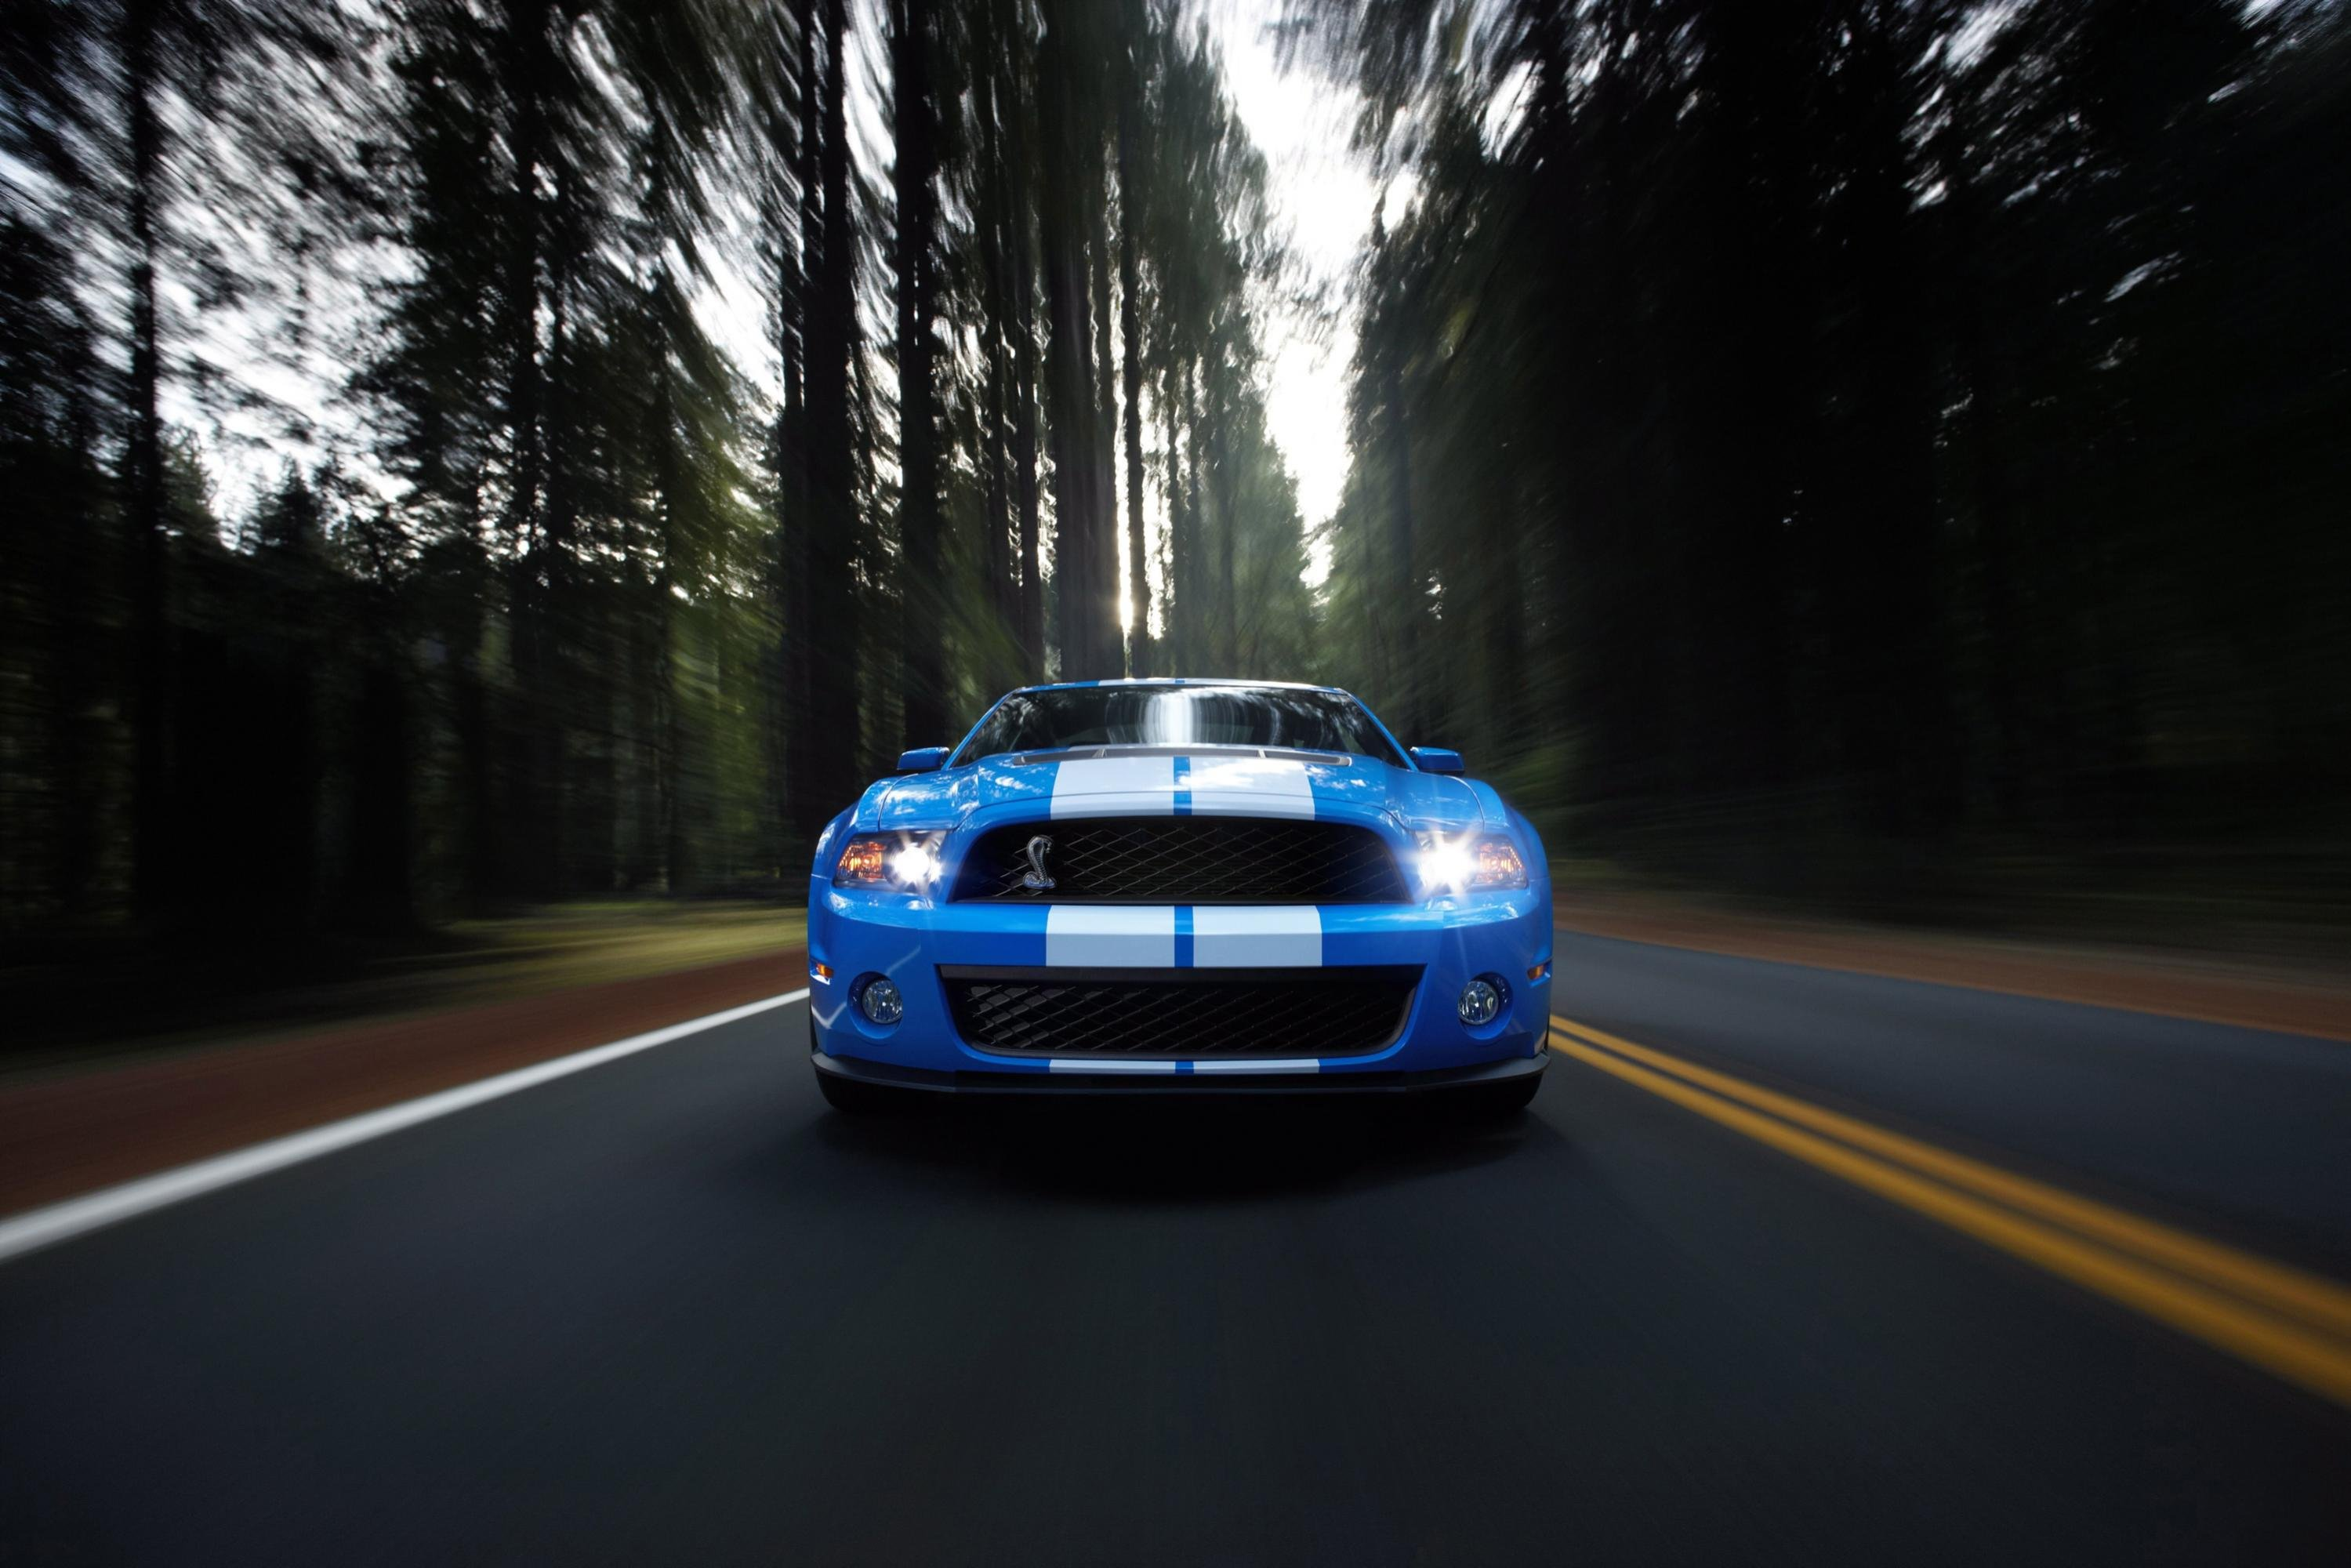 96213d1271271469 2011 mustang wallpaper 10shelbygt500 03 Wallpaper 2011 mustangs